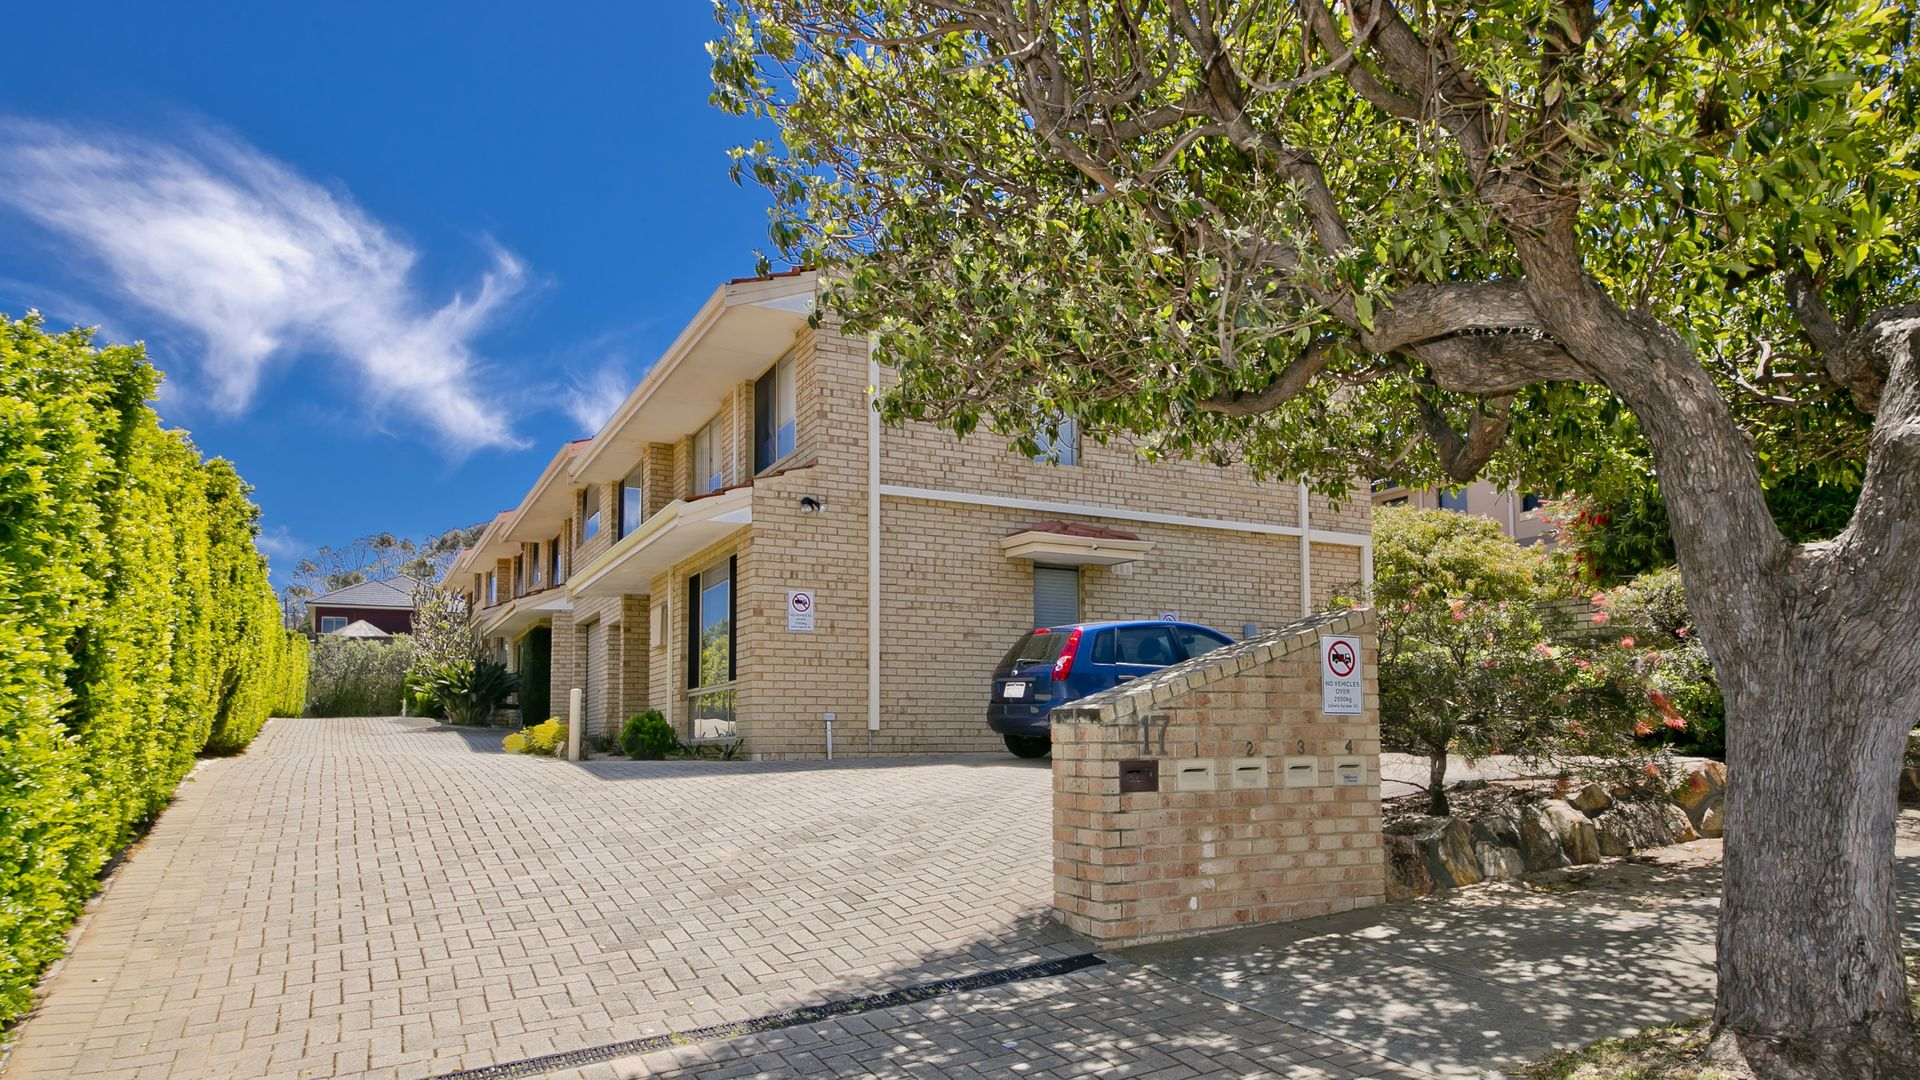 2/17 Wheatcroft Street, Scarborough WA 6019, Image 2